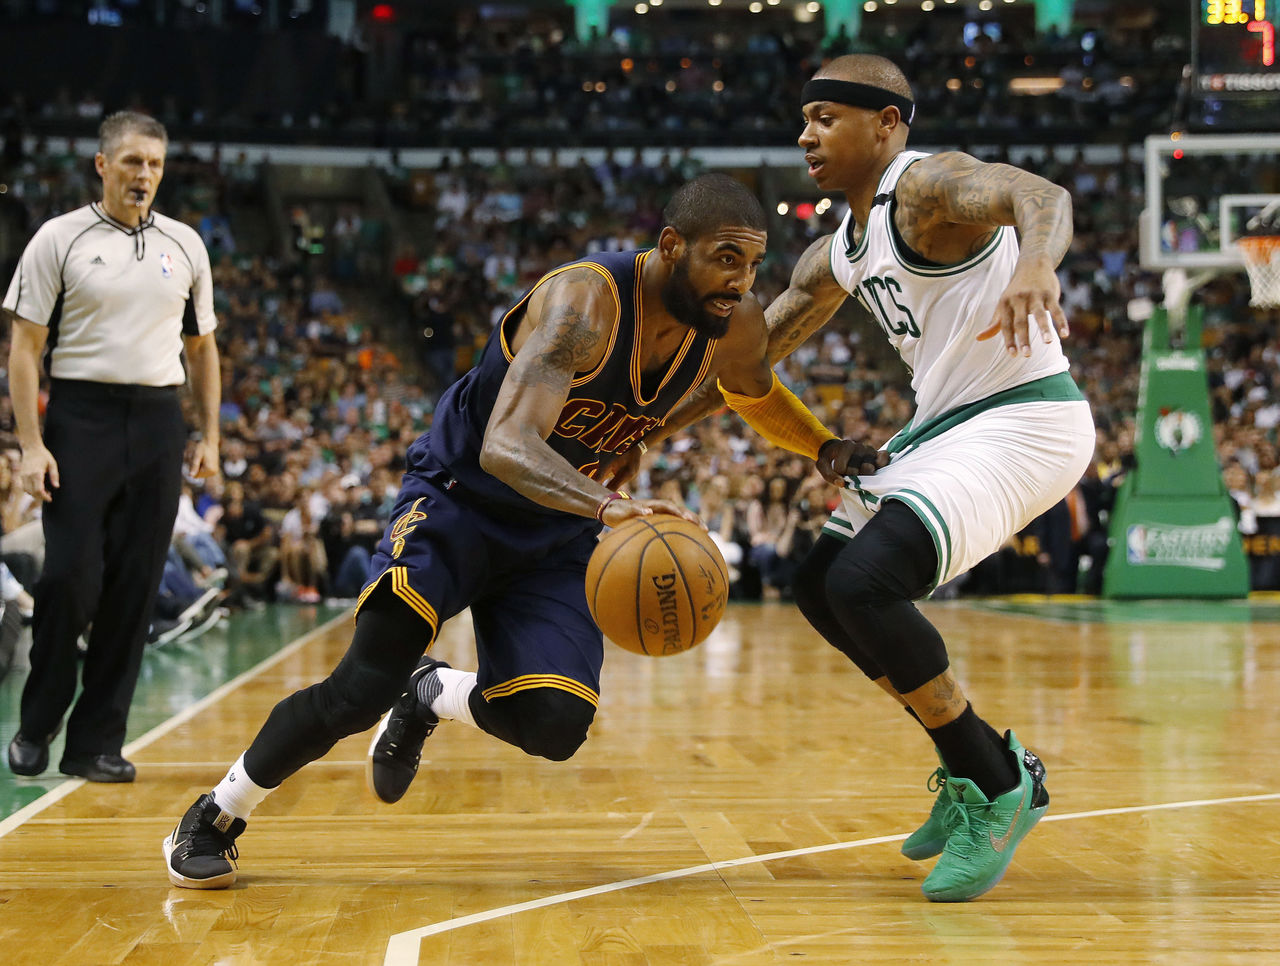 Cropped 2017 05 20t020034z 1300125734 nocid rtrmadp 3 nba playoffs cleveland cavaliers at boston celtics